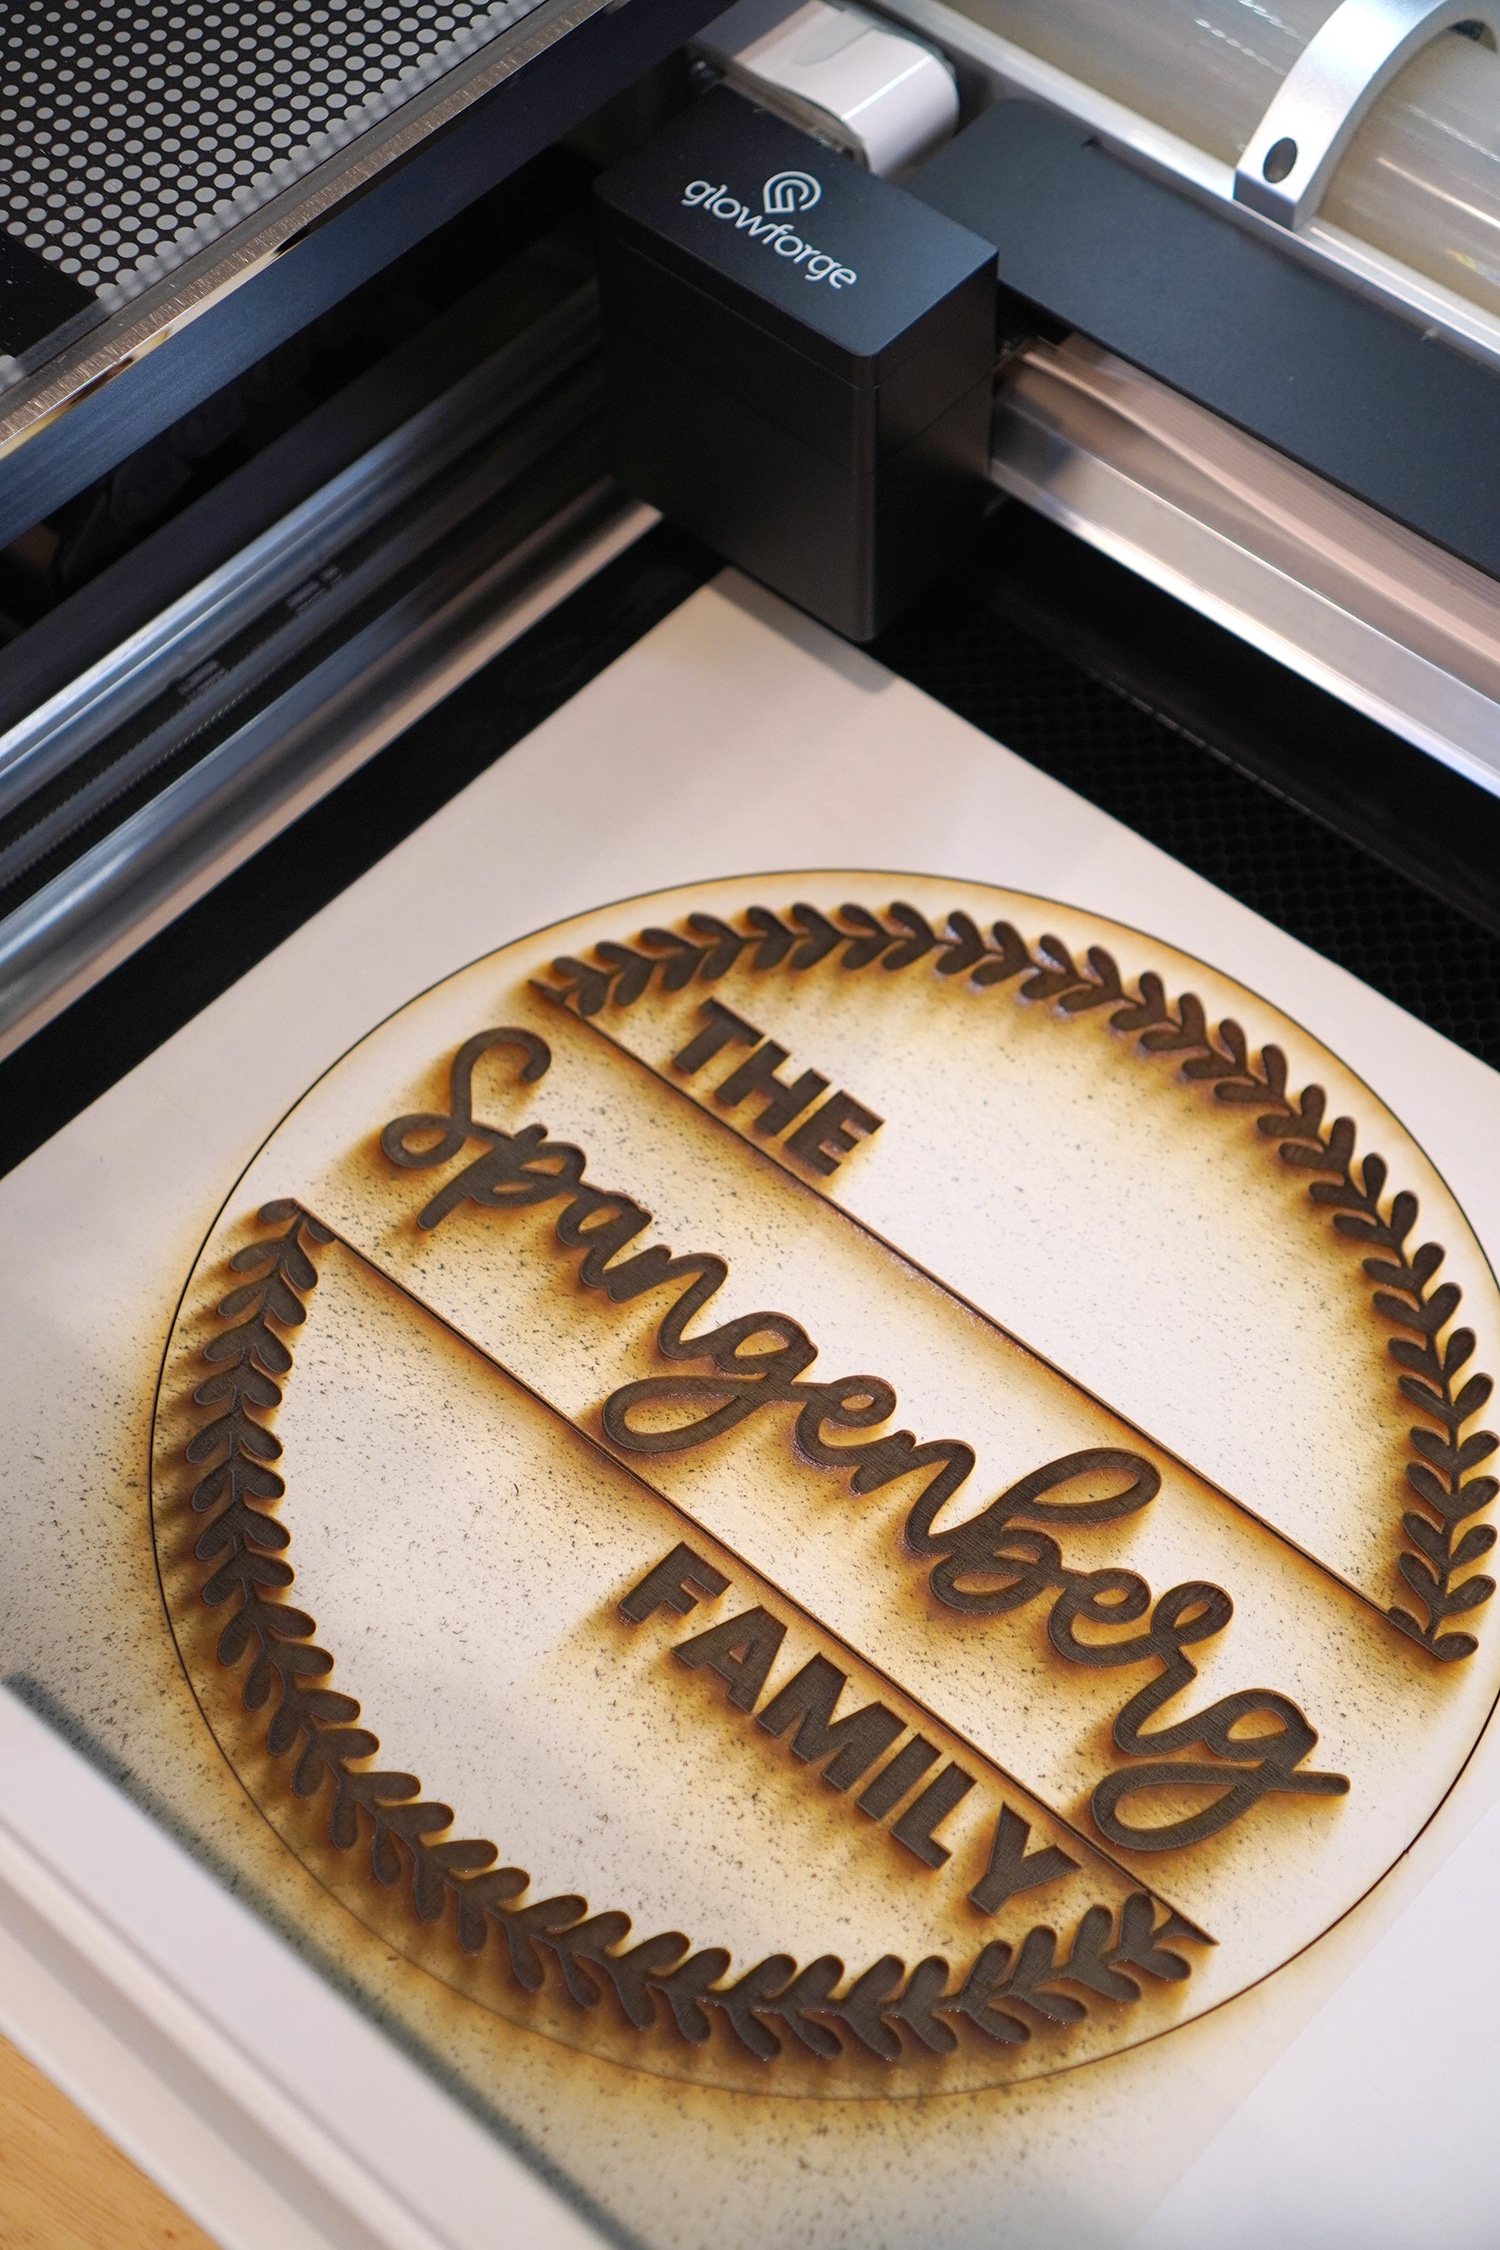 Custom Wood Sign in Glowforge - just finished engraving, still in machine